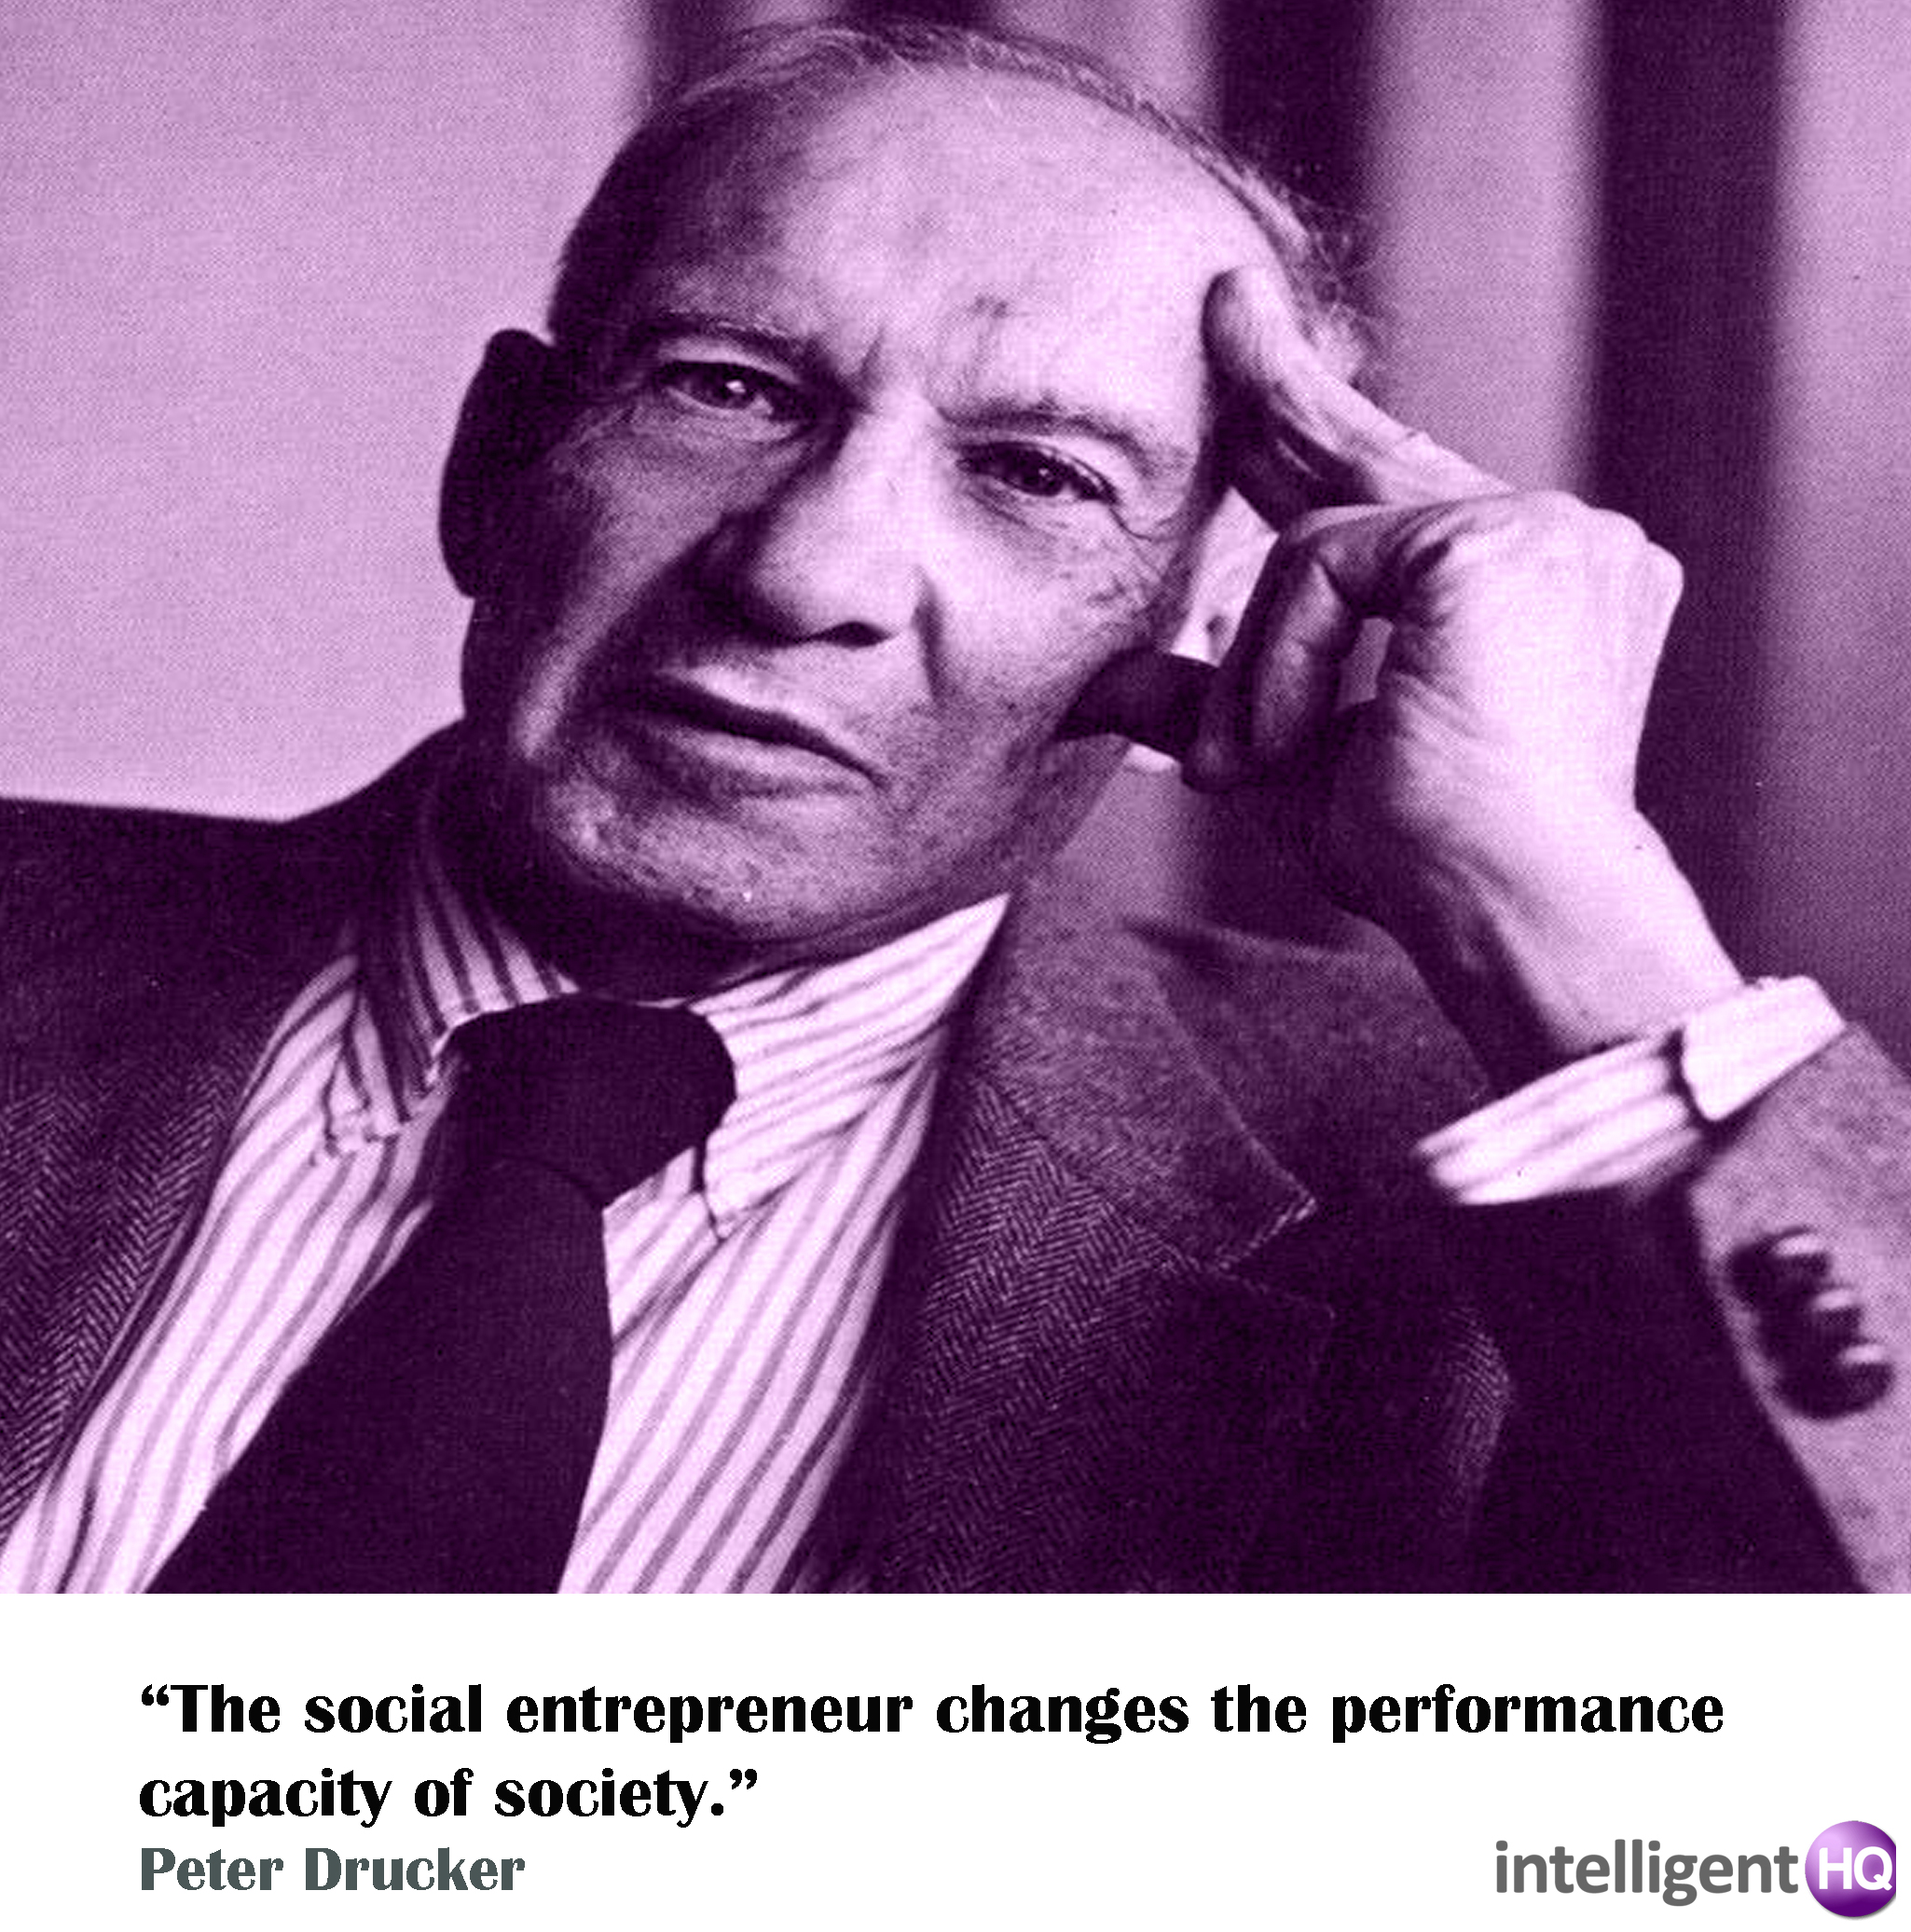 Quote by Peter Drucker. Intelligenthq